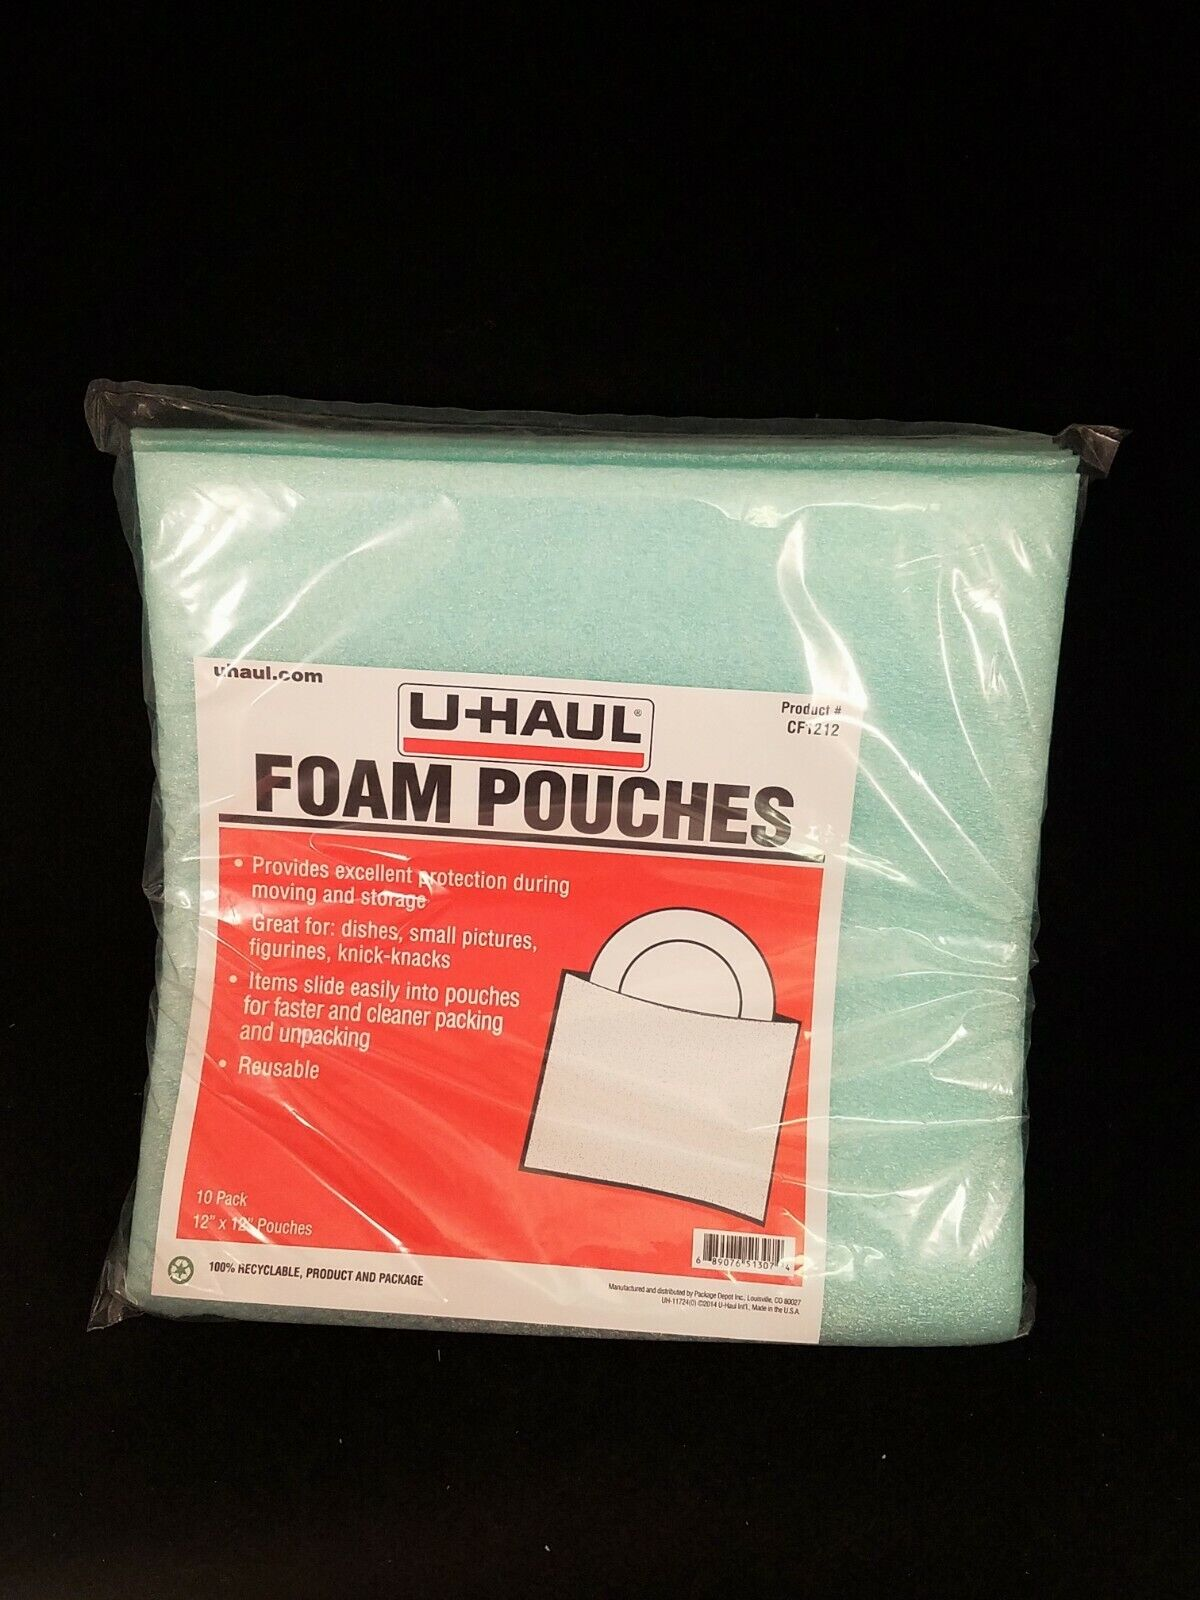 Protect Dishes UBOXES 7x11-7//8 Foam Pouches for Glasses 25 Pack